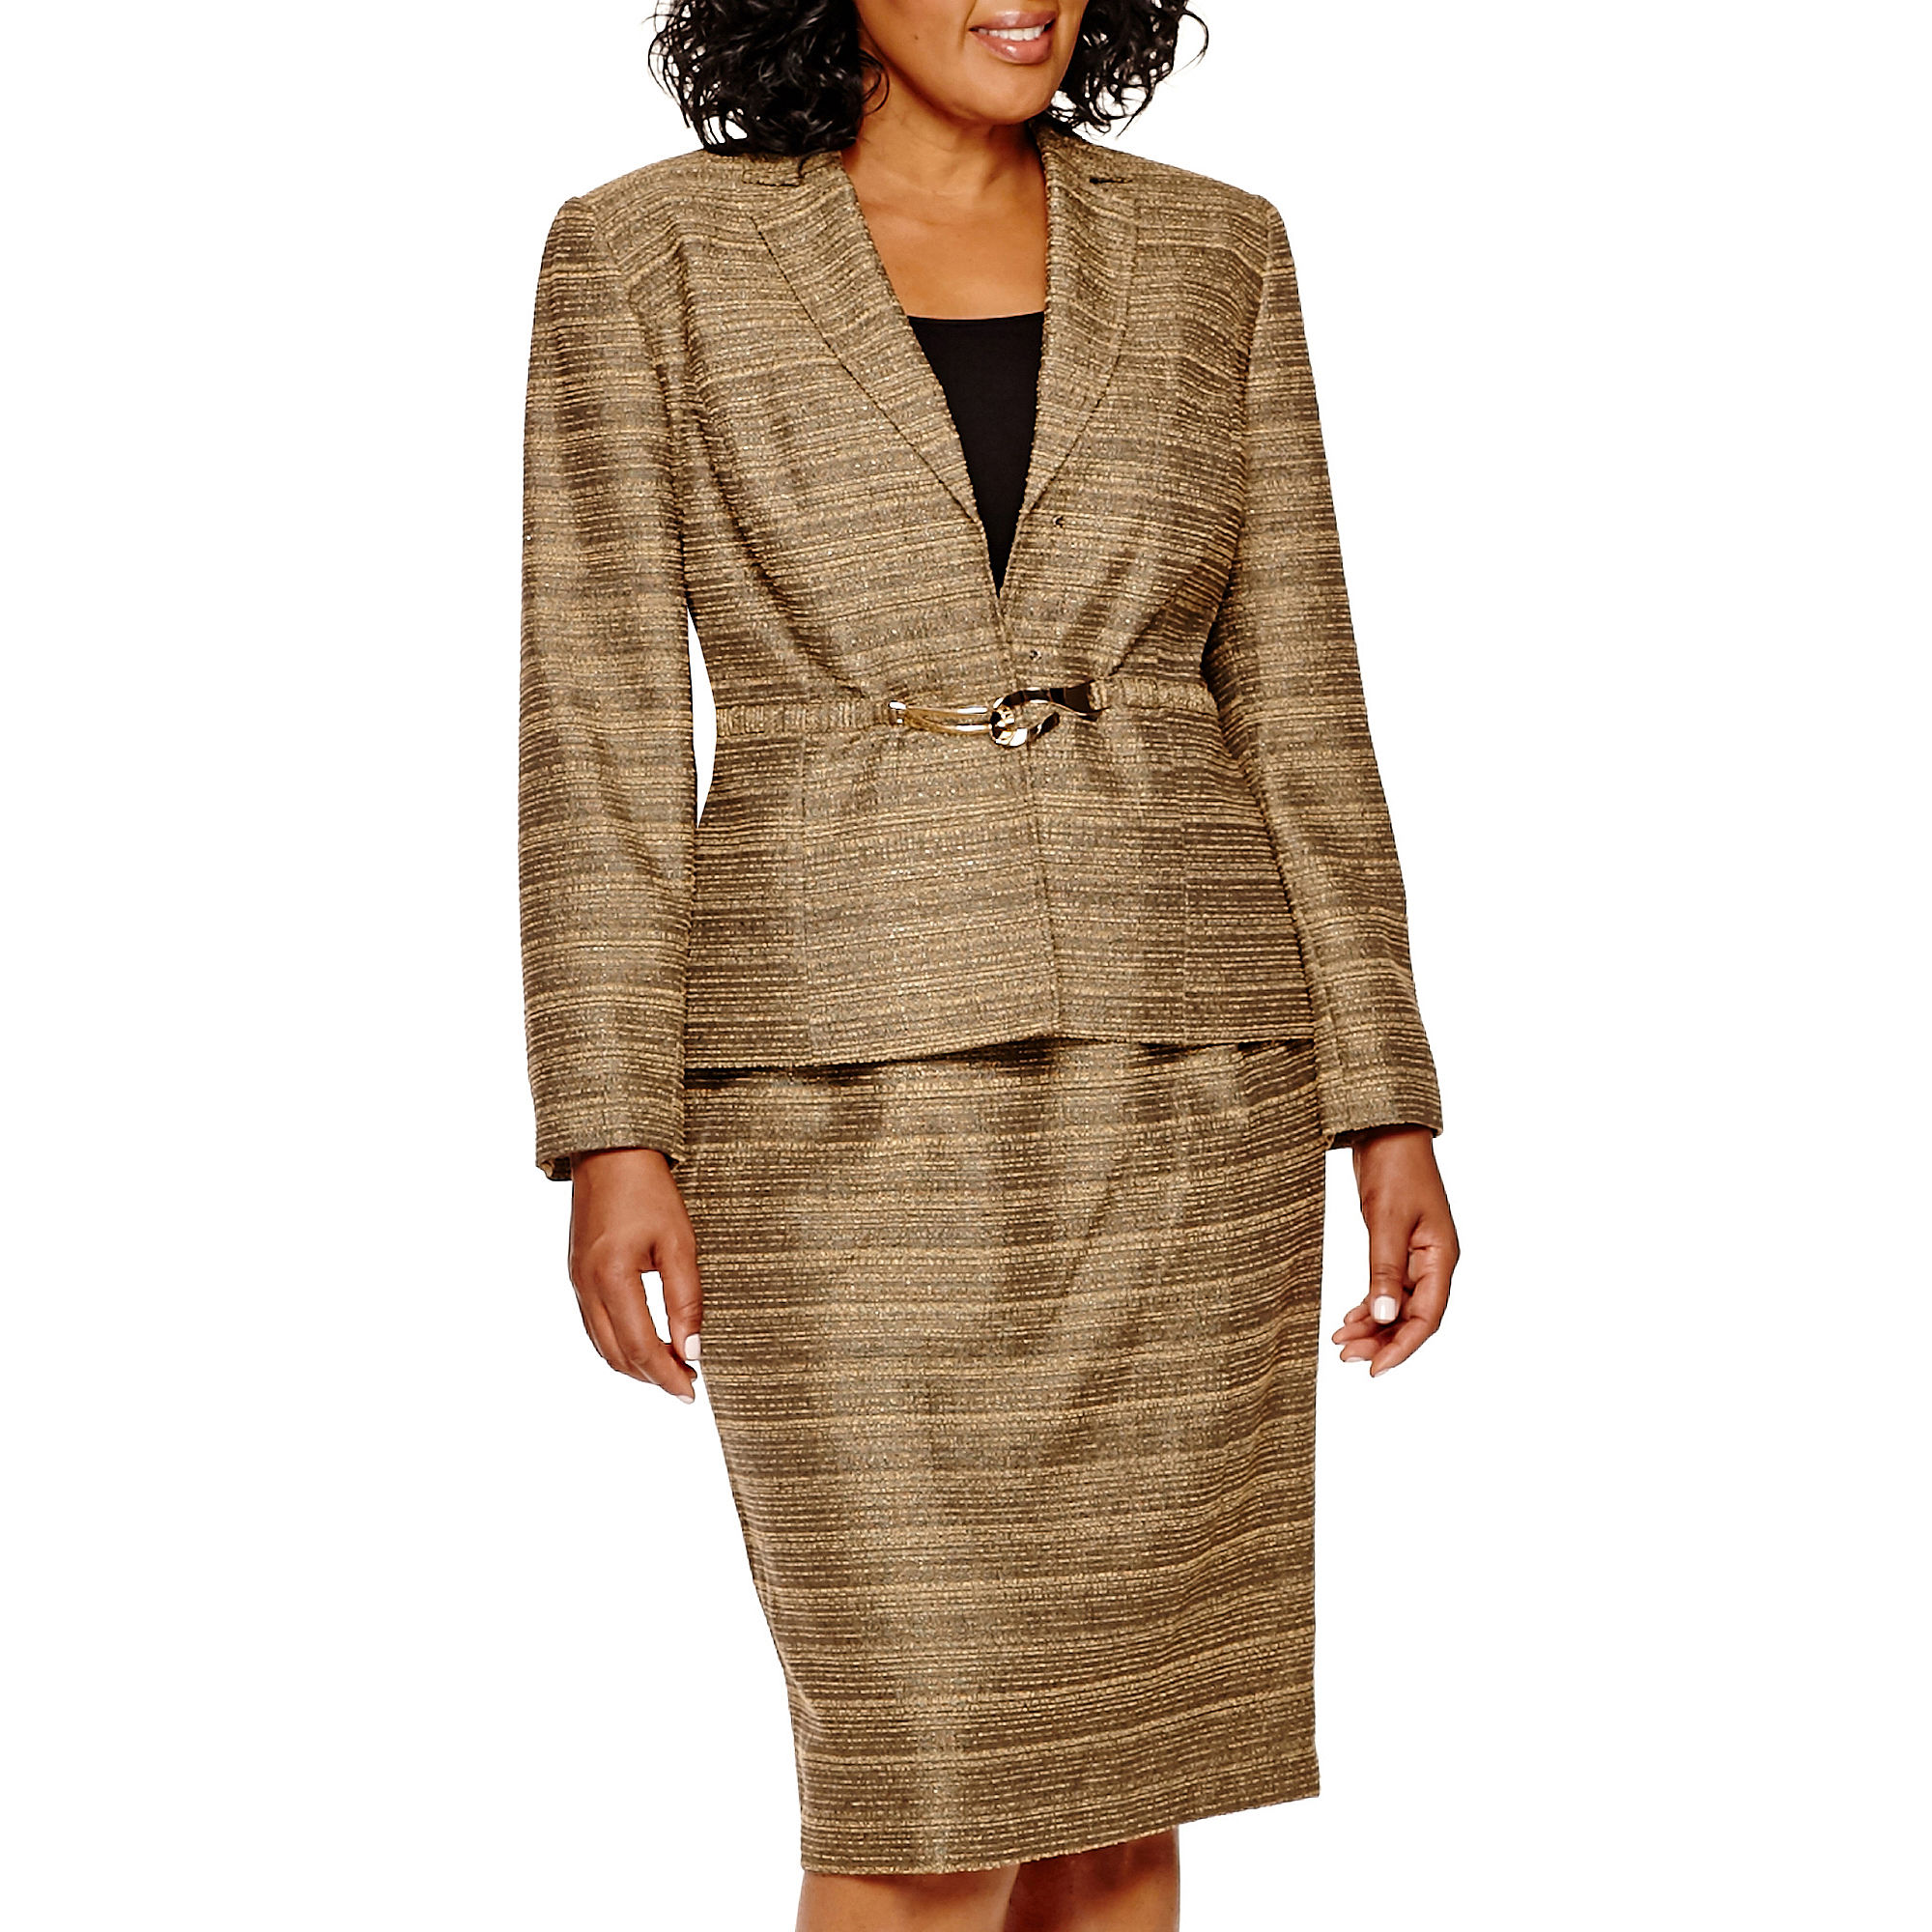 Isabella Long-Sleeve Textured Jacket and Skirt Suit - Plus